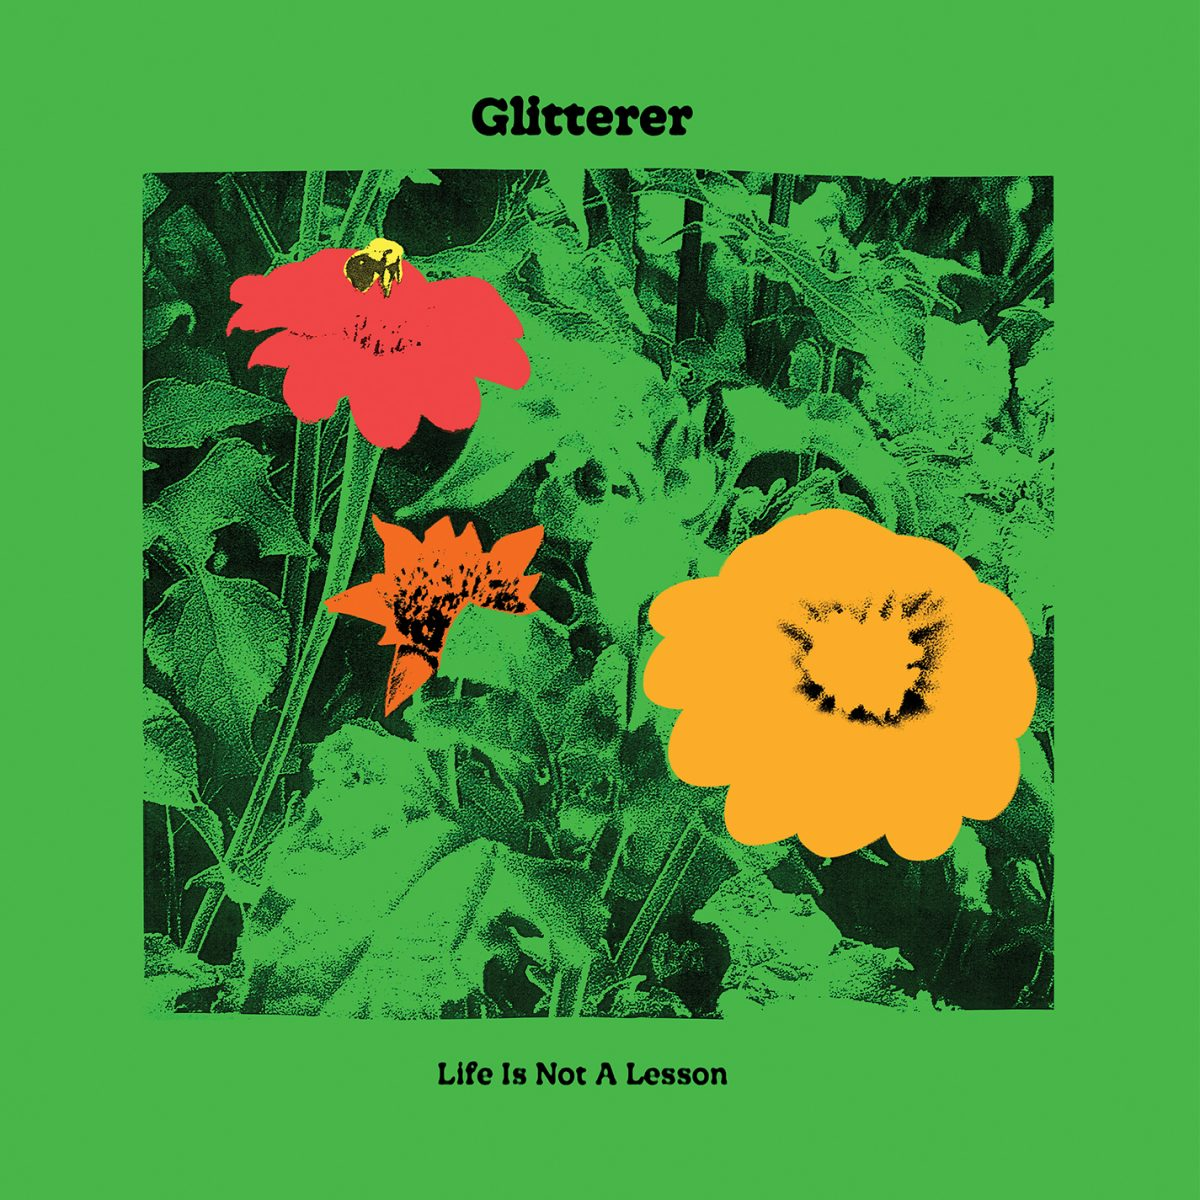 glitterer-life-is-not-a-lesson-album-review